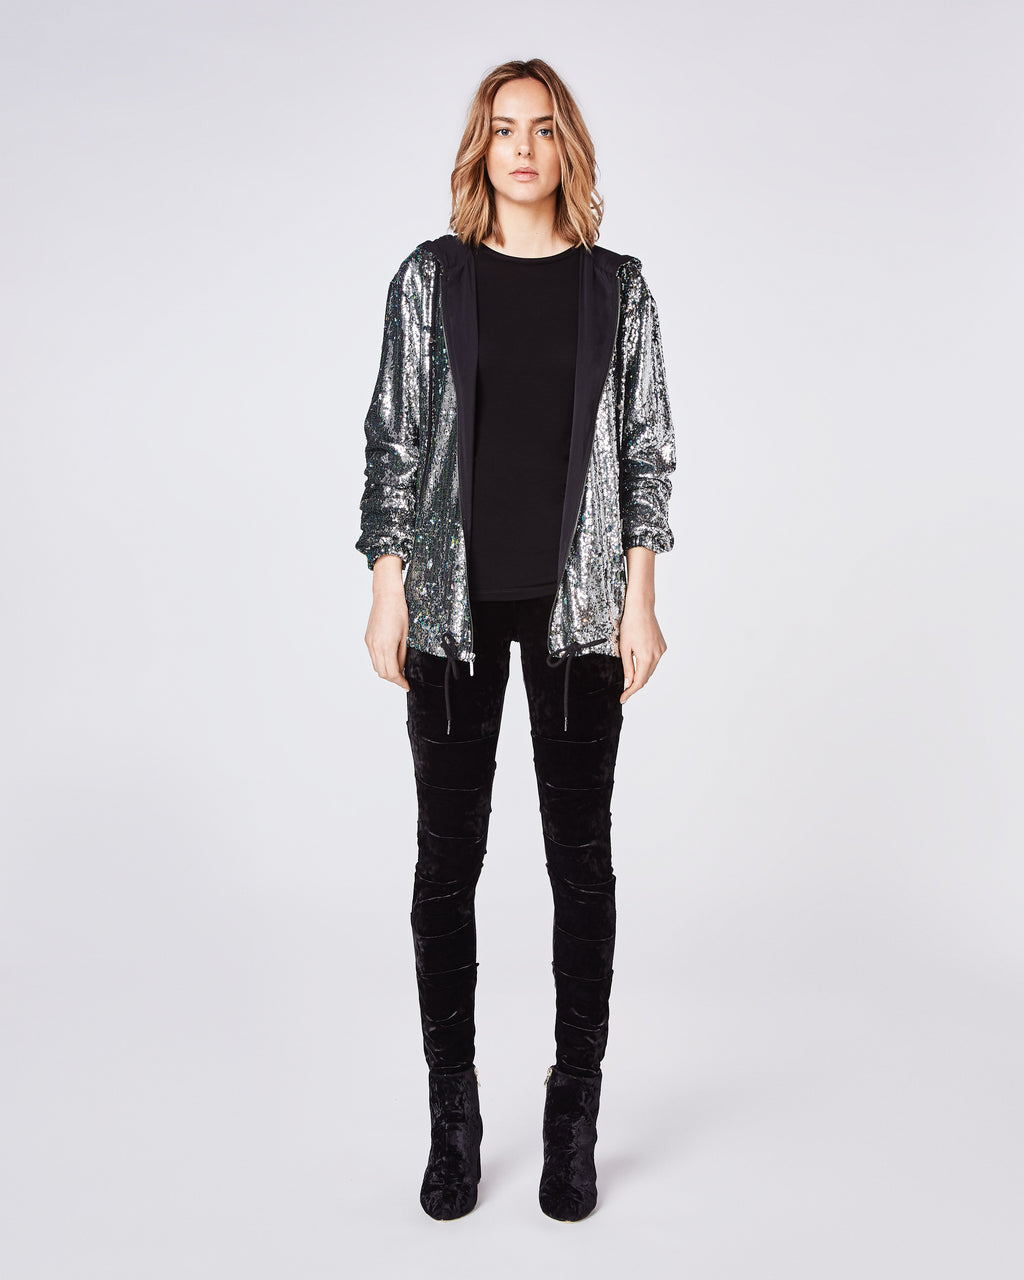 BM10207 - MERMAID SEQUIN ZIP UP HOODIE - tops - shirts - THIS RELAXED FIT SEQUIN ZIP-UP HOODIE PAIRS WELL WITH A BLACK PANT AND BOOTIE. Final Sale